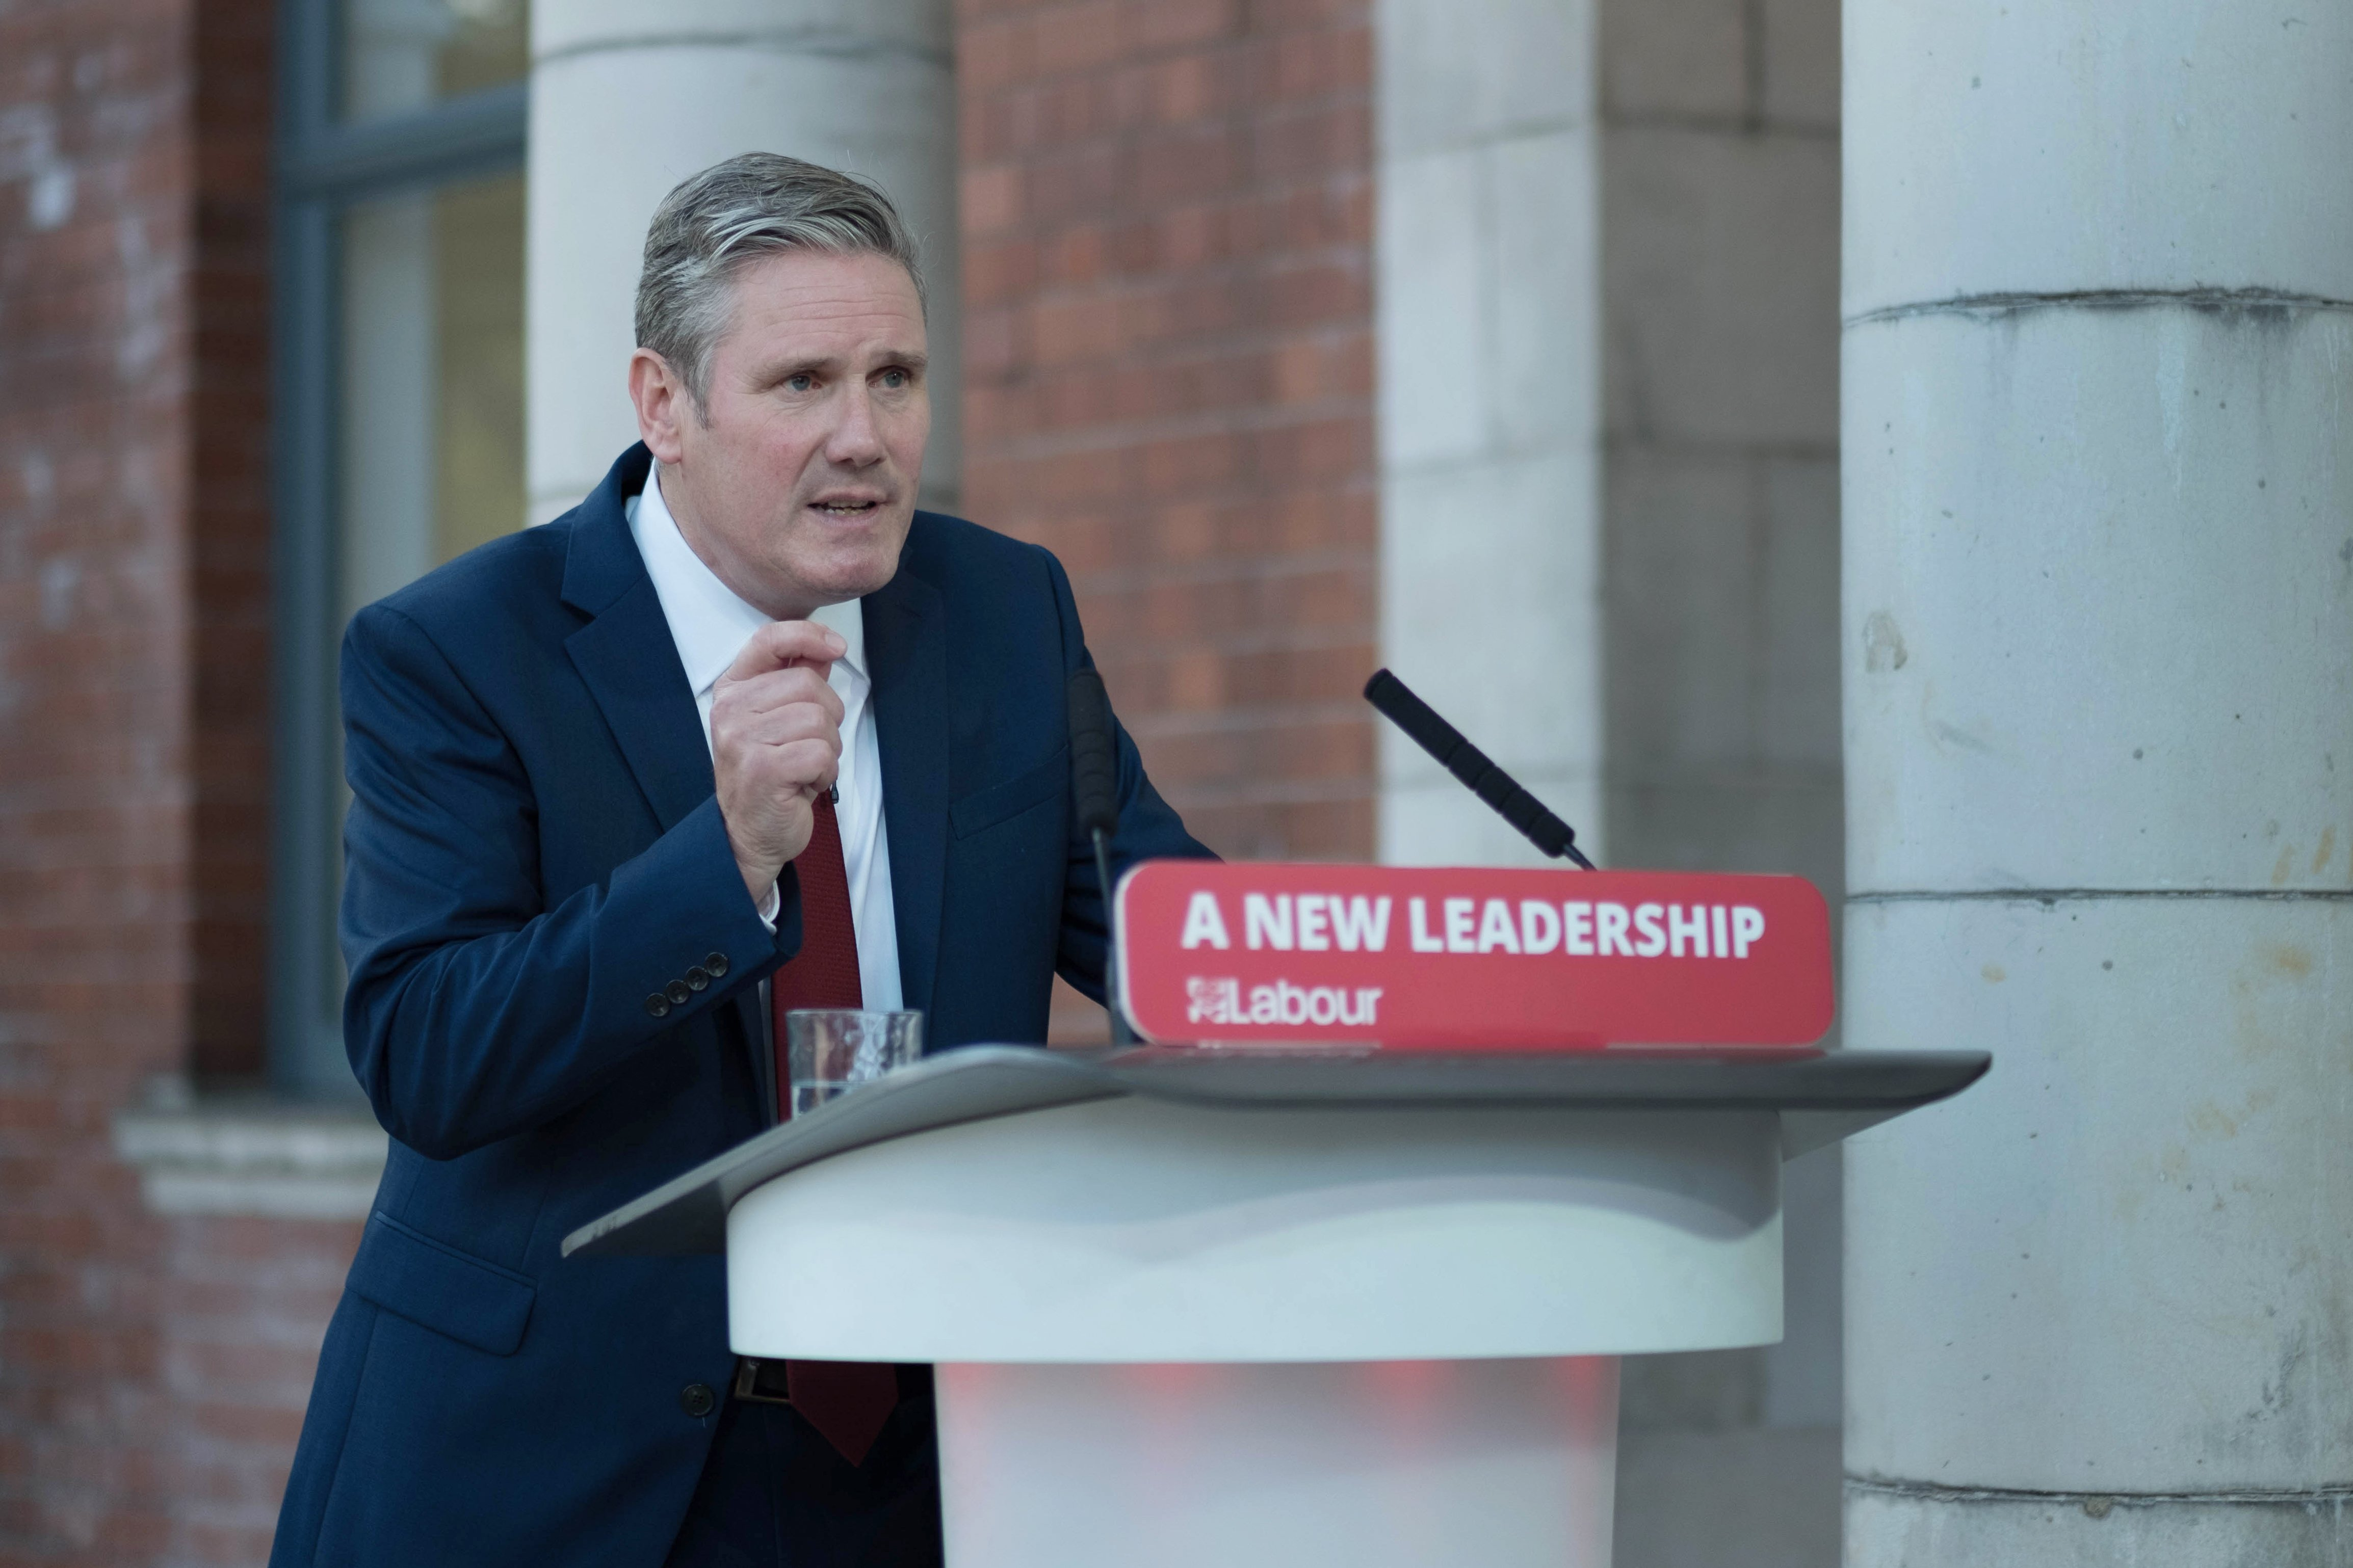 Labour is under new leadership, Starmer makes clear in speech